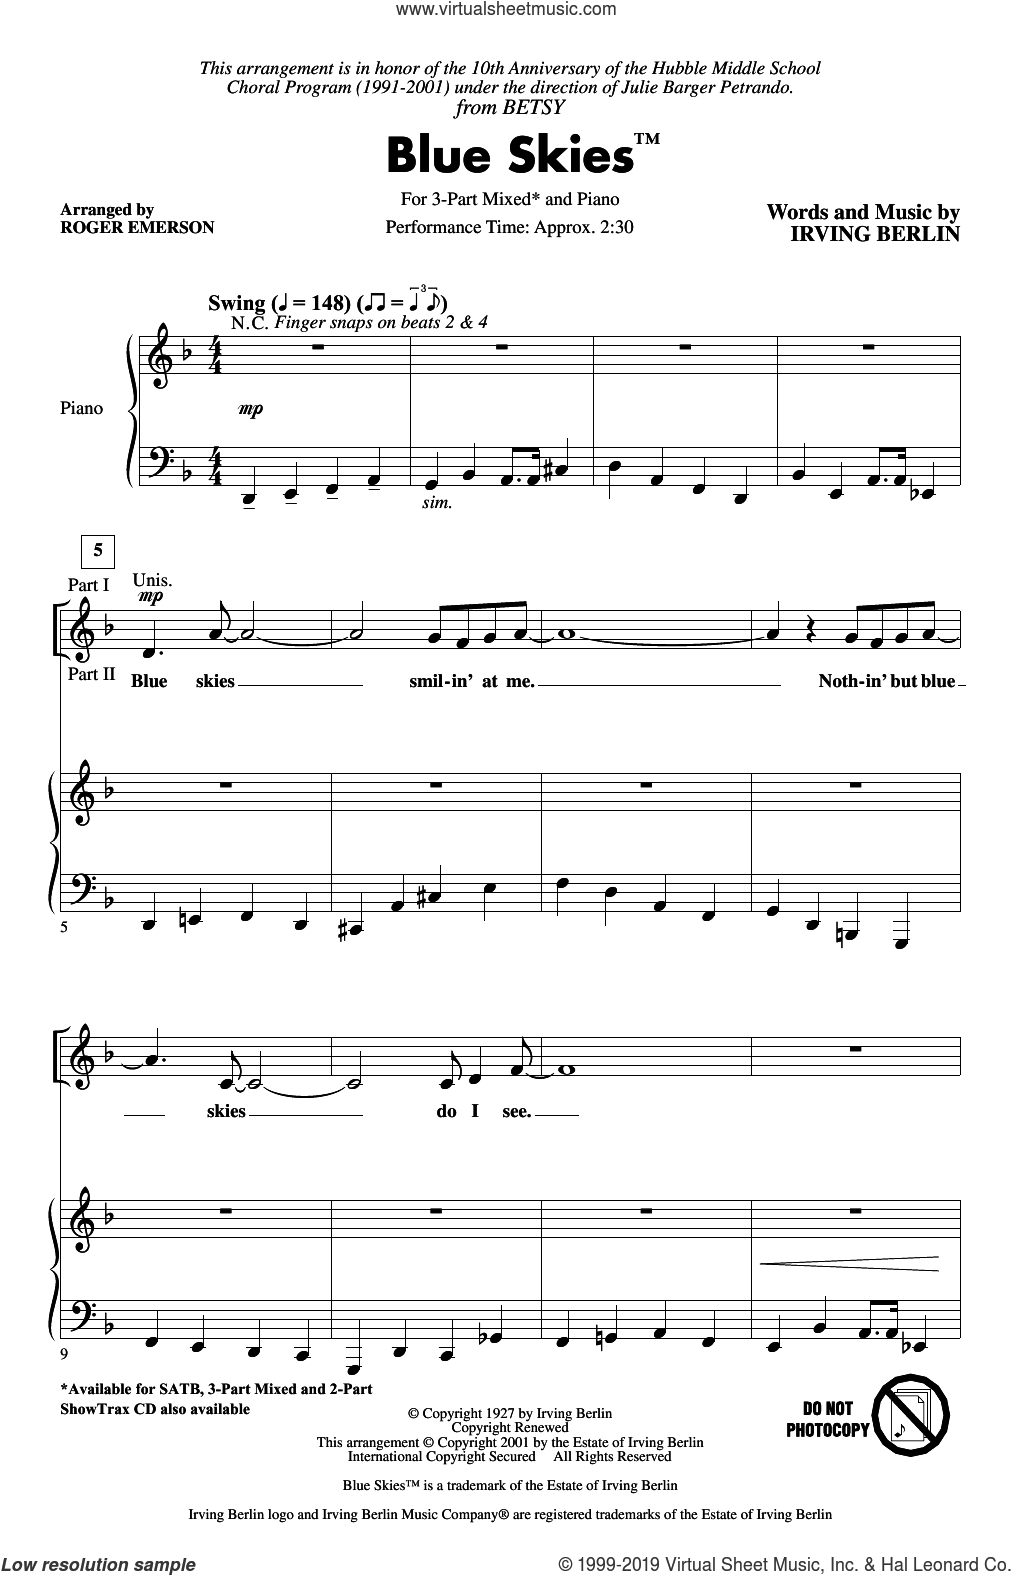 Blue Skies (arr. Roger Emerson) sheet music for choir (3-Part Mixed) by Irving Berlin and Roger Emerson, intermediate skill level